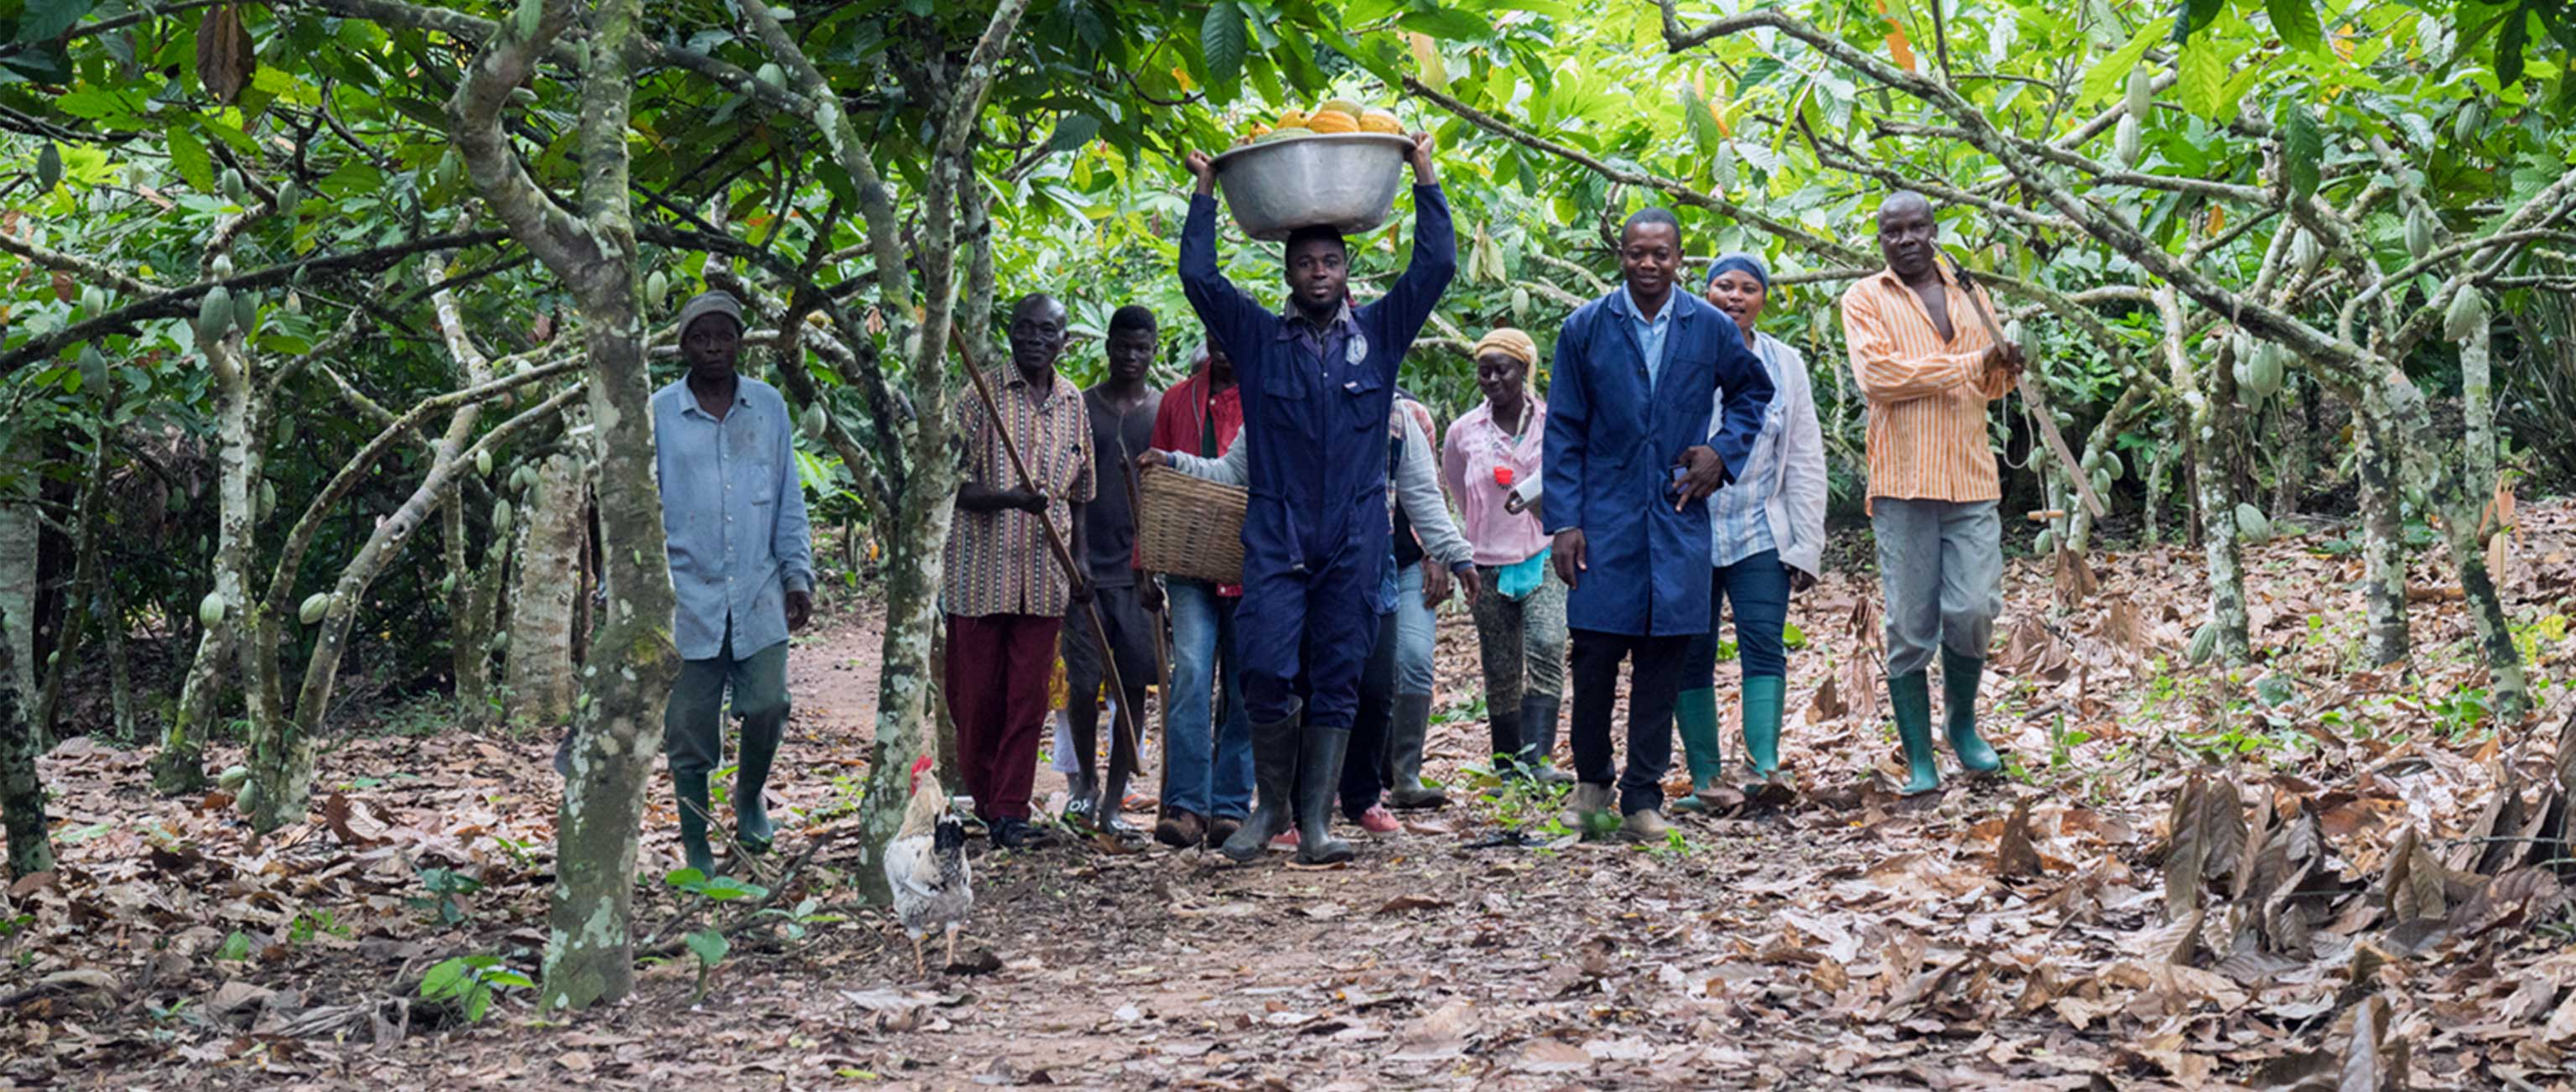 Sustainable Solutions at the Base of the Supply Chain: The Case for Cocoa